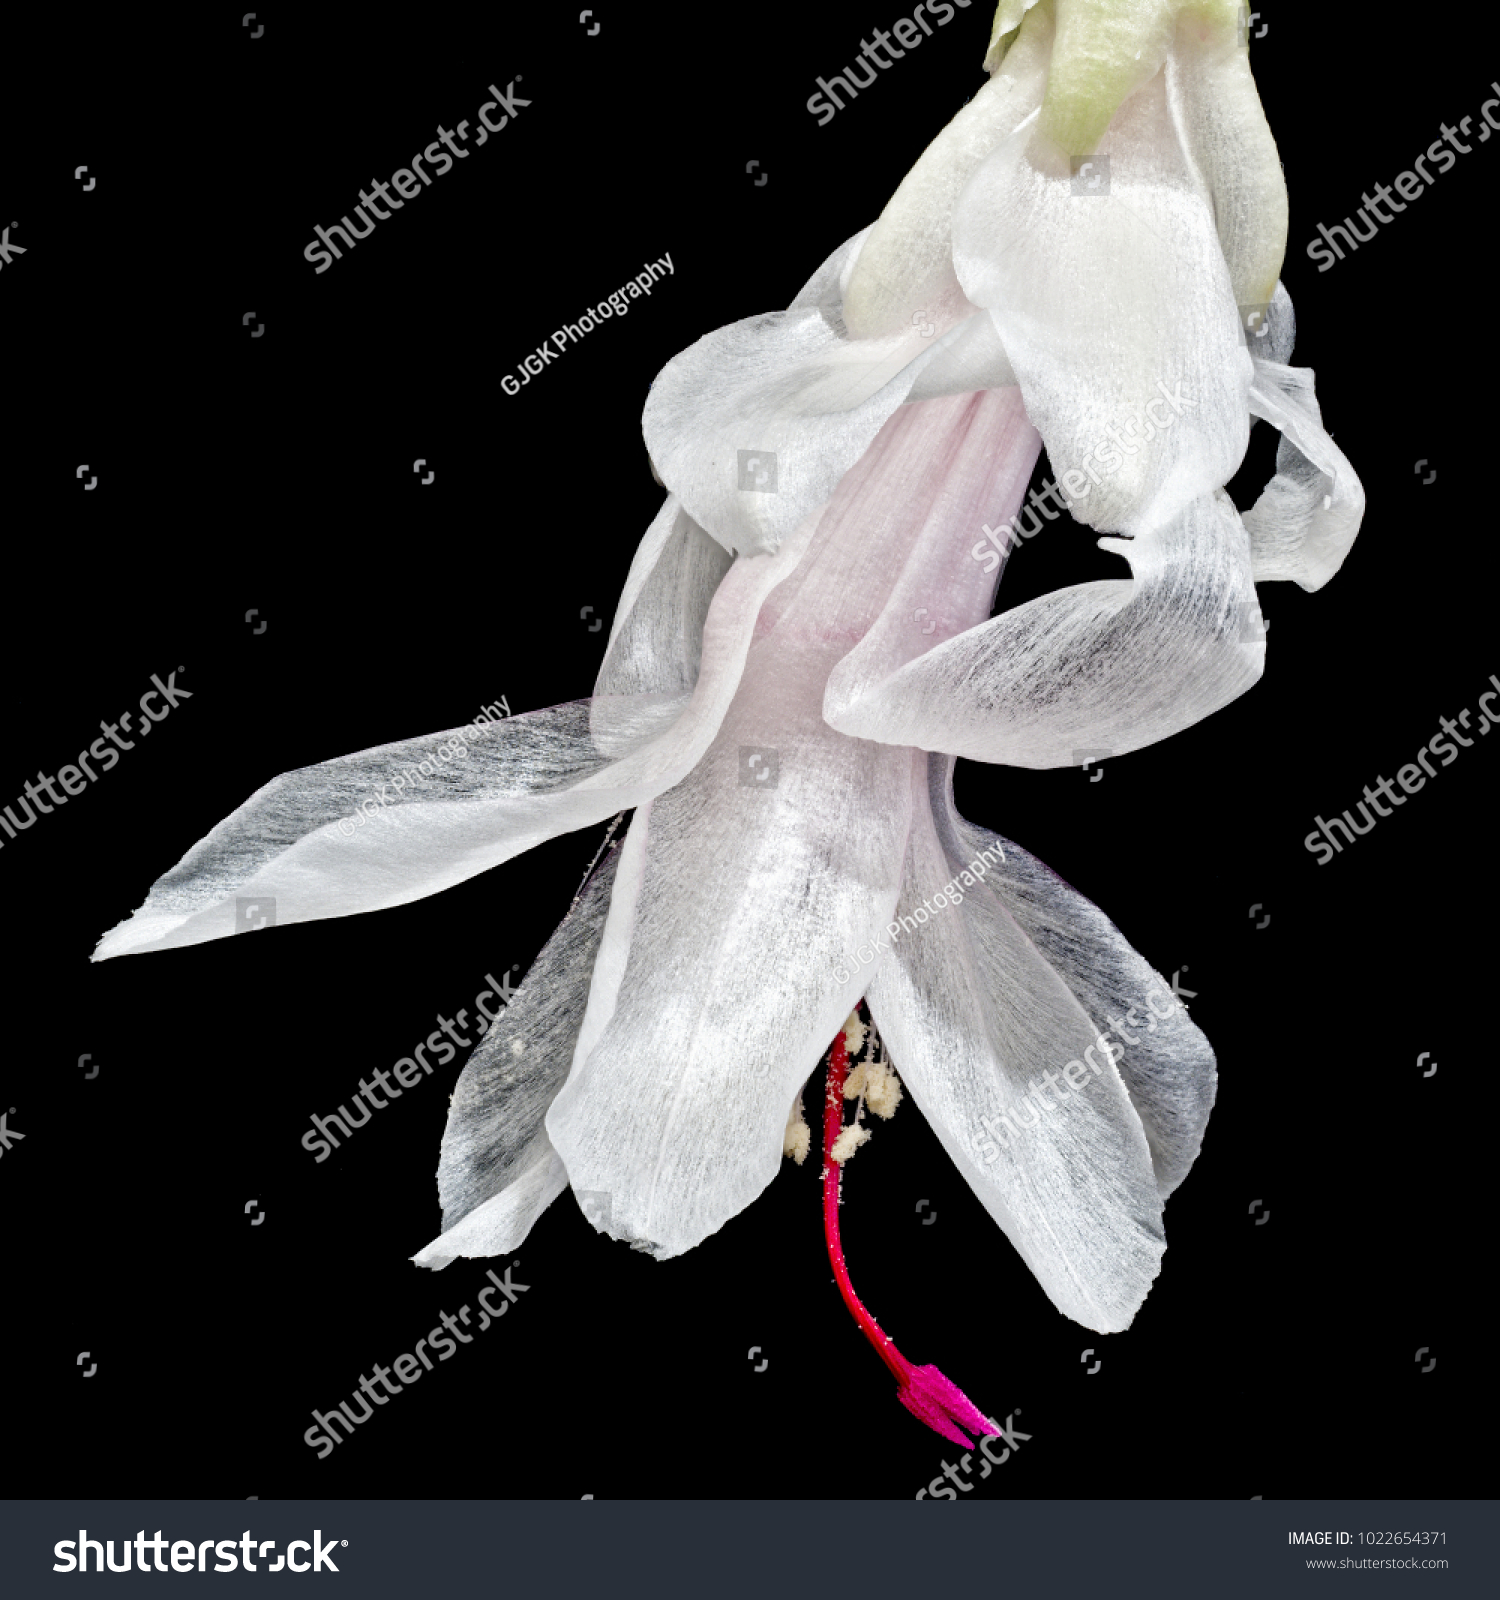 White Christmas Cactus Flower Using Photo Stacking Of About 25